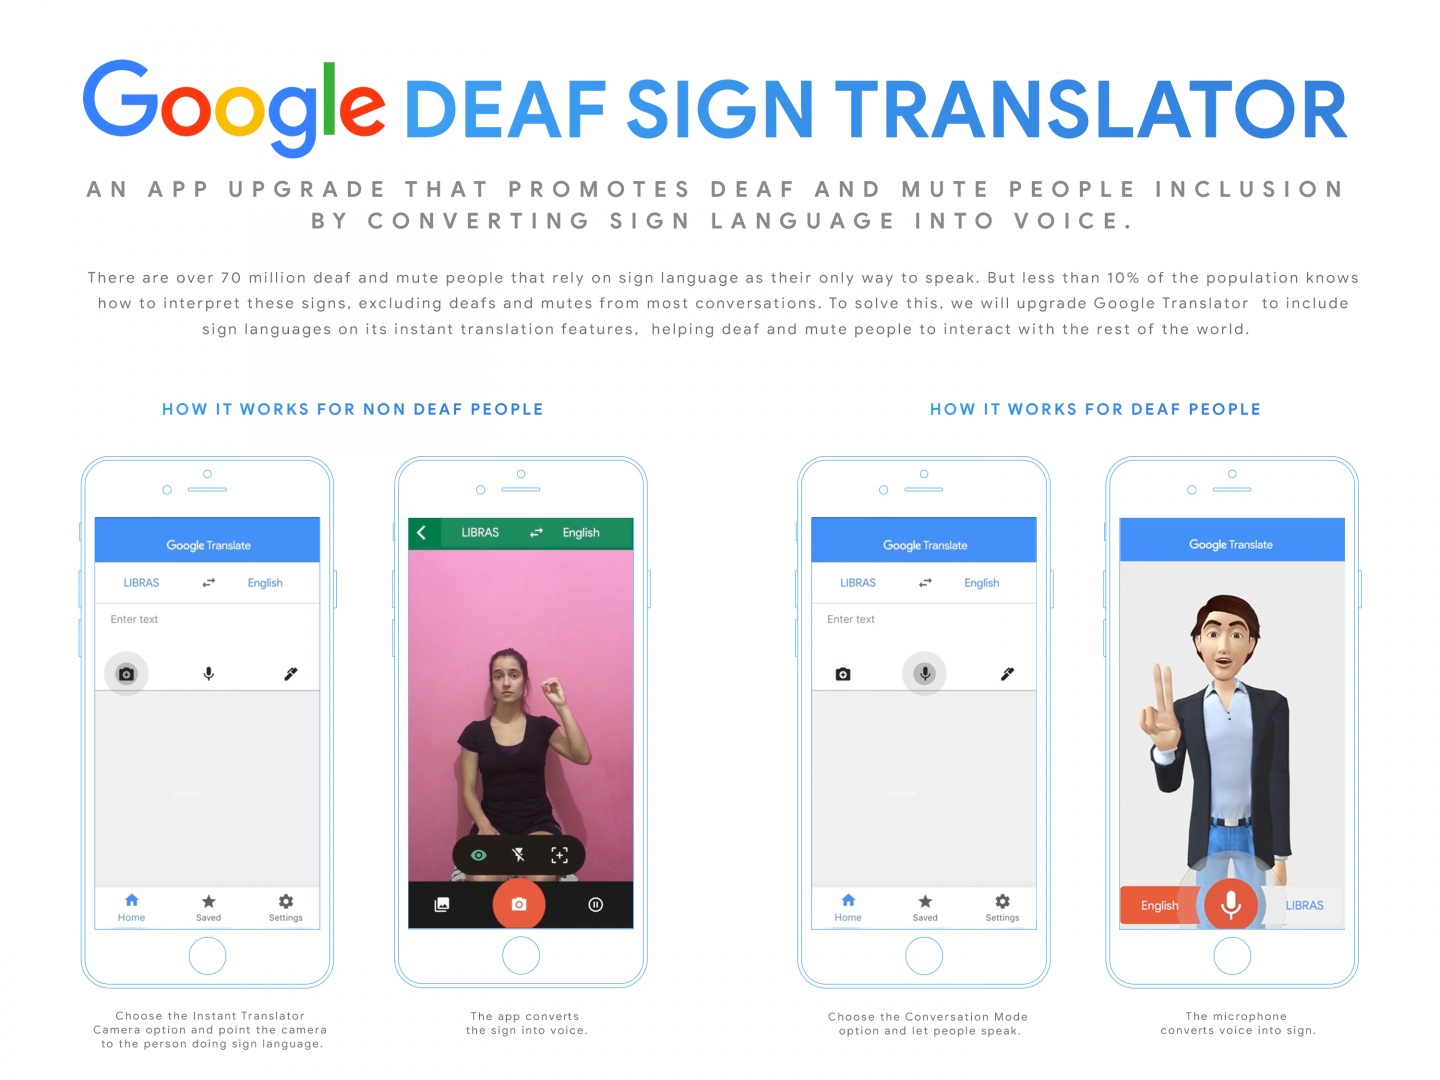 Google Deaf Sign Translator Thumbnail